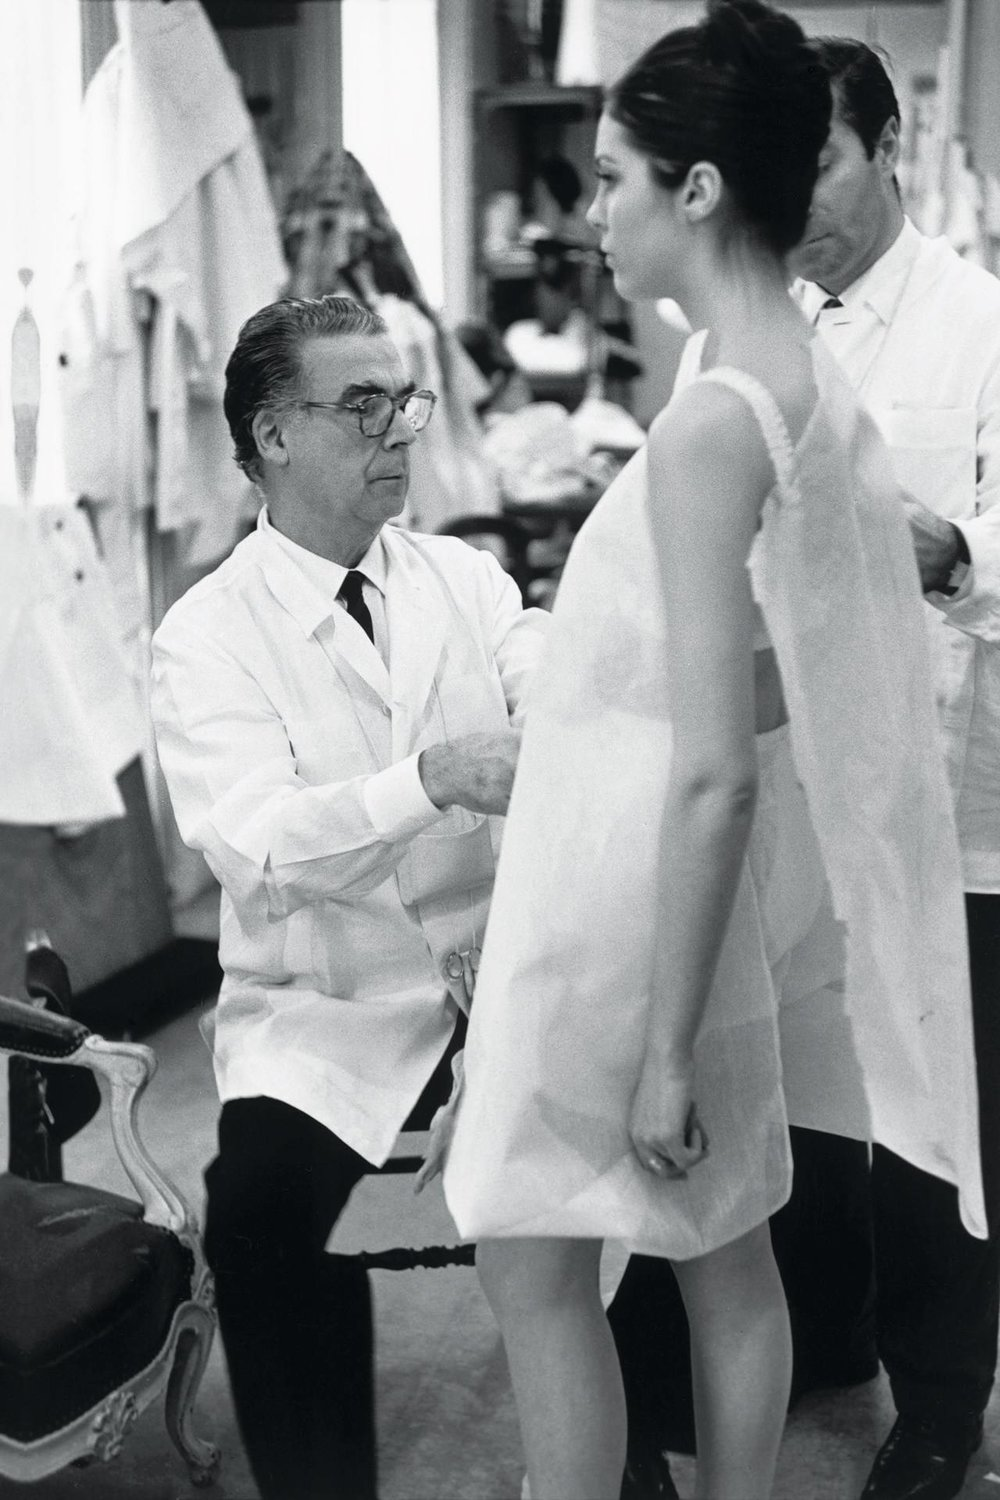 Cristóbal Balenciaga at work, 1968, Paris, France / Photo: Henri Cartier-Bresson. © Henri Cartier-Bresson/Magnum Photos